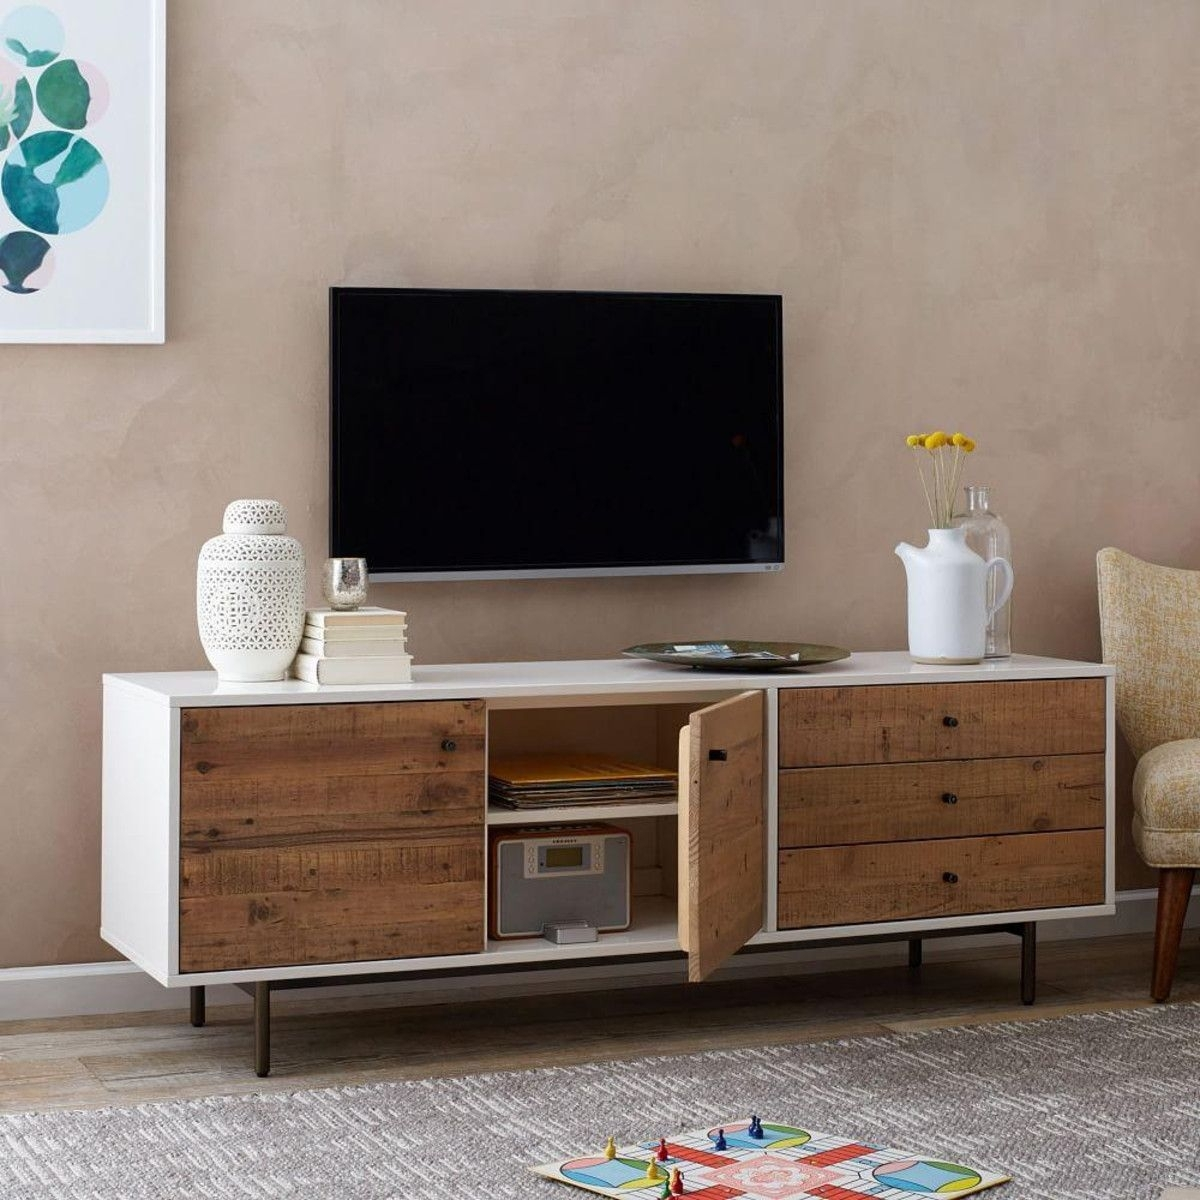 Reclaimed Wood + Lacquer Media Console (178 Cm) | West Elm Uk within Light Brown Reclaimed Elm & Pine 84 Inch Sideboards (Image 20 of 30)